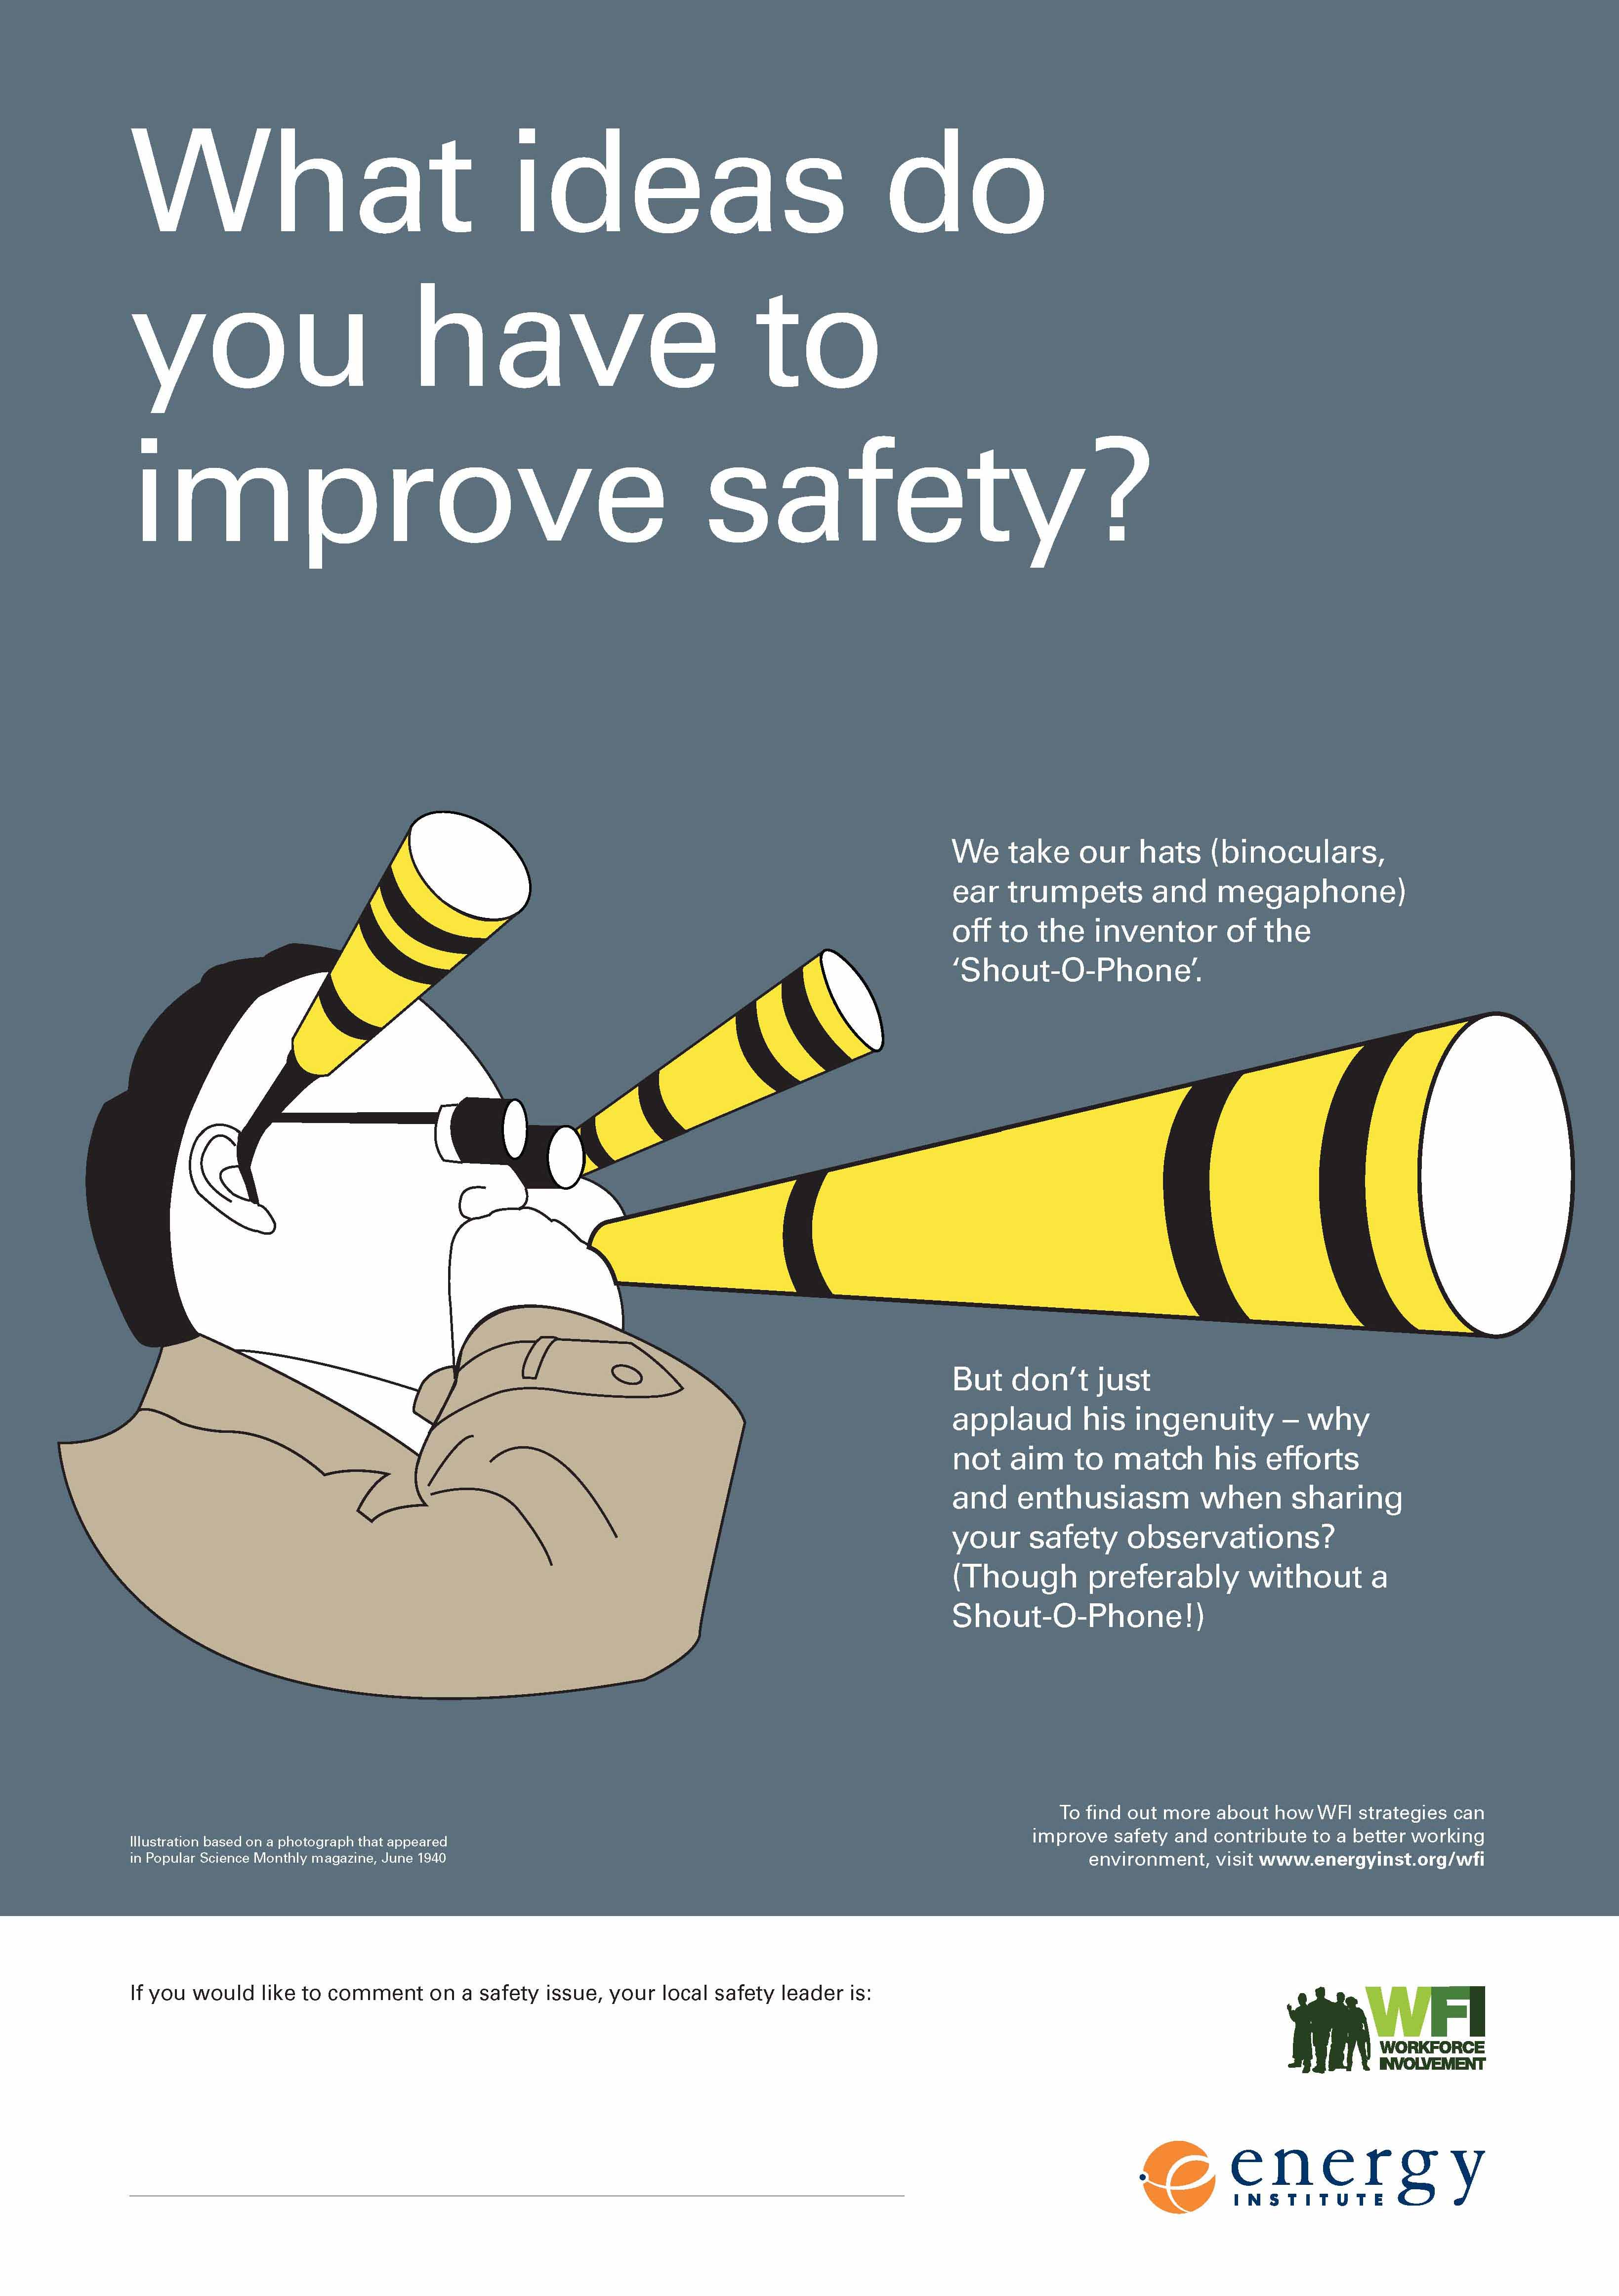 workforce involvement poster 7: what ideas do you have to improve